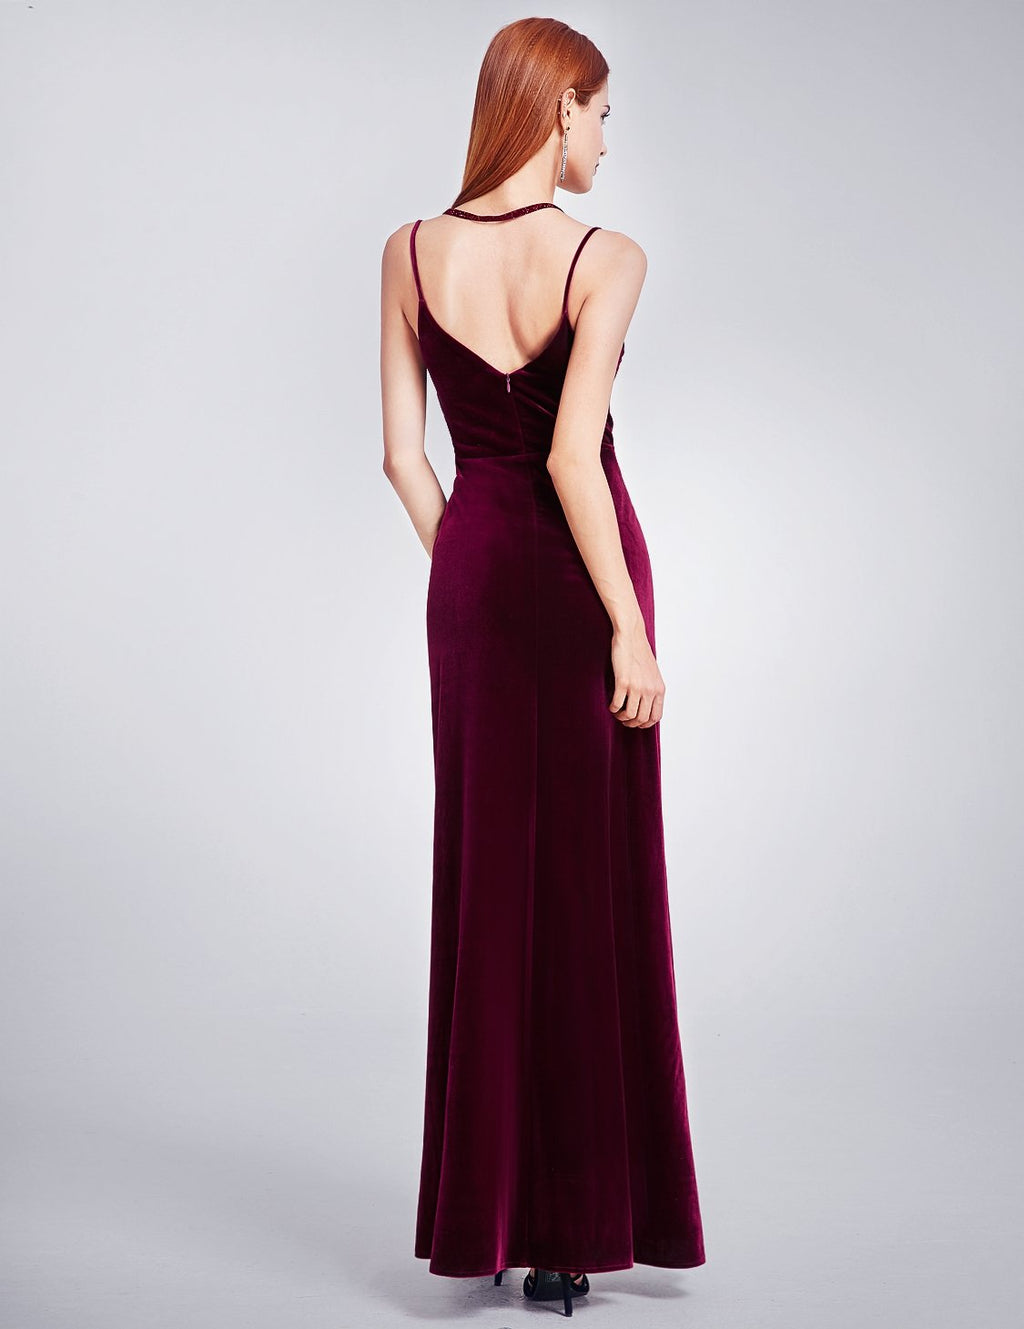 Sexy High Slit Evening Dress Burgundy